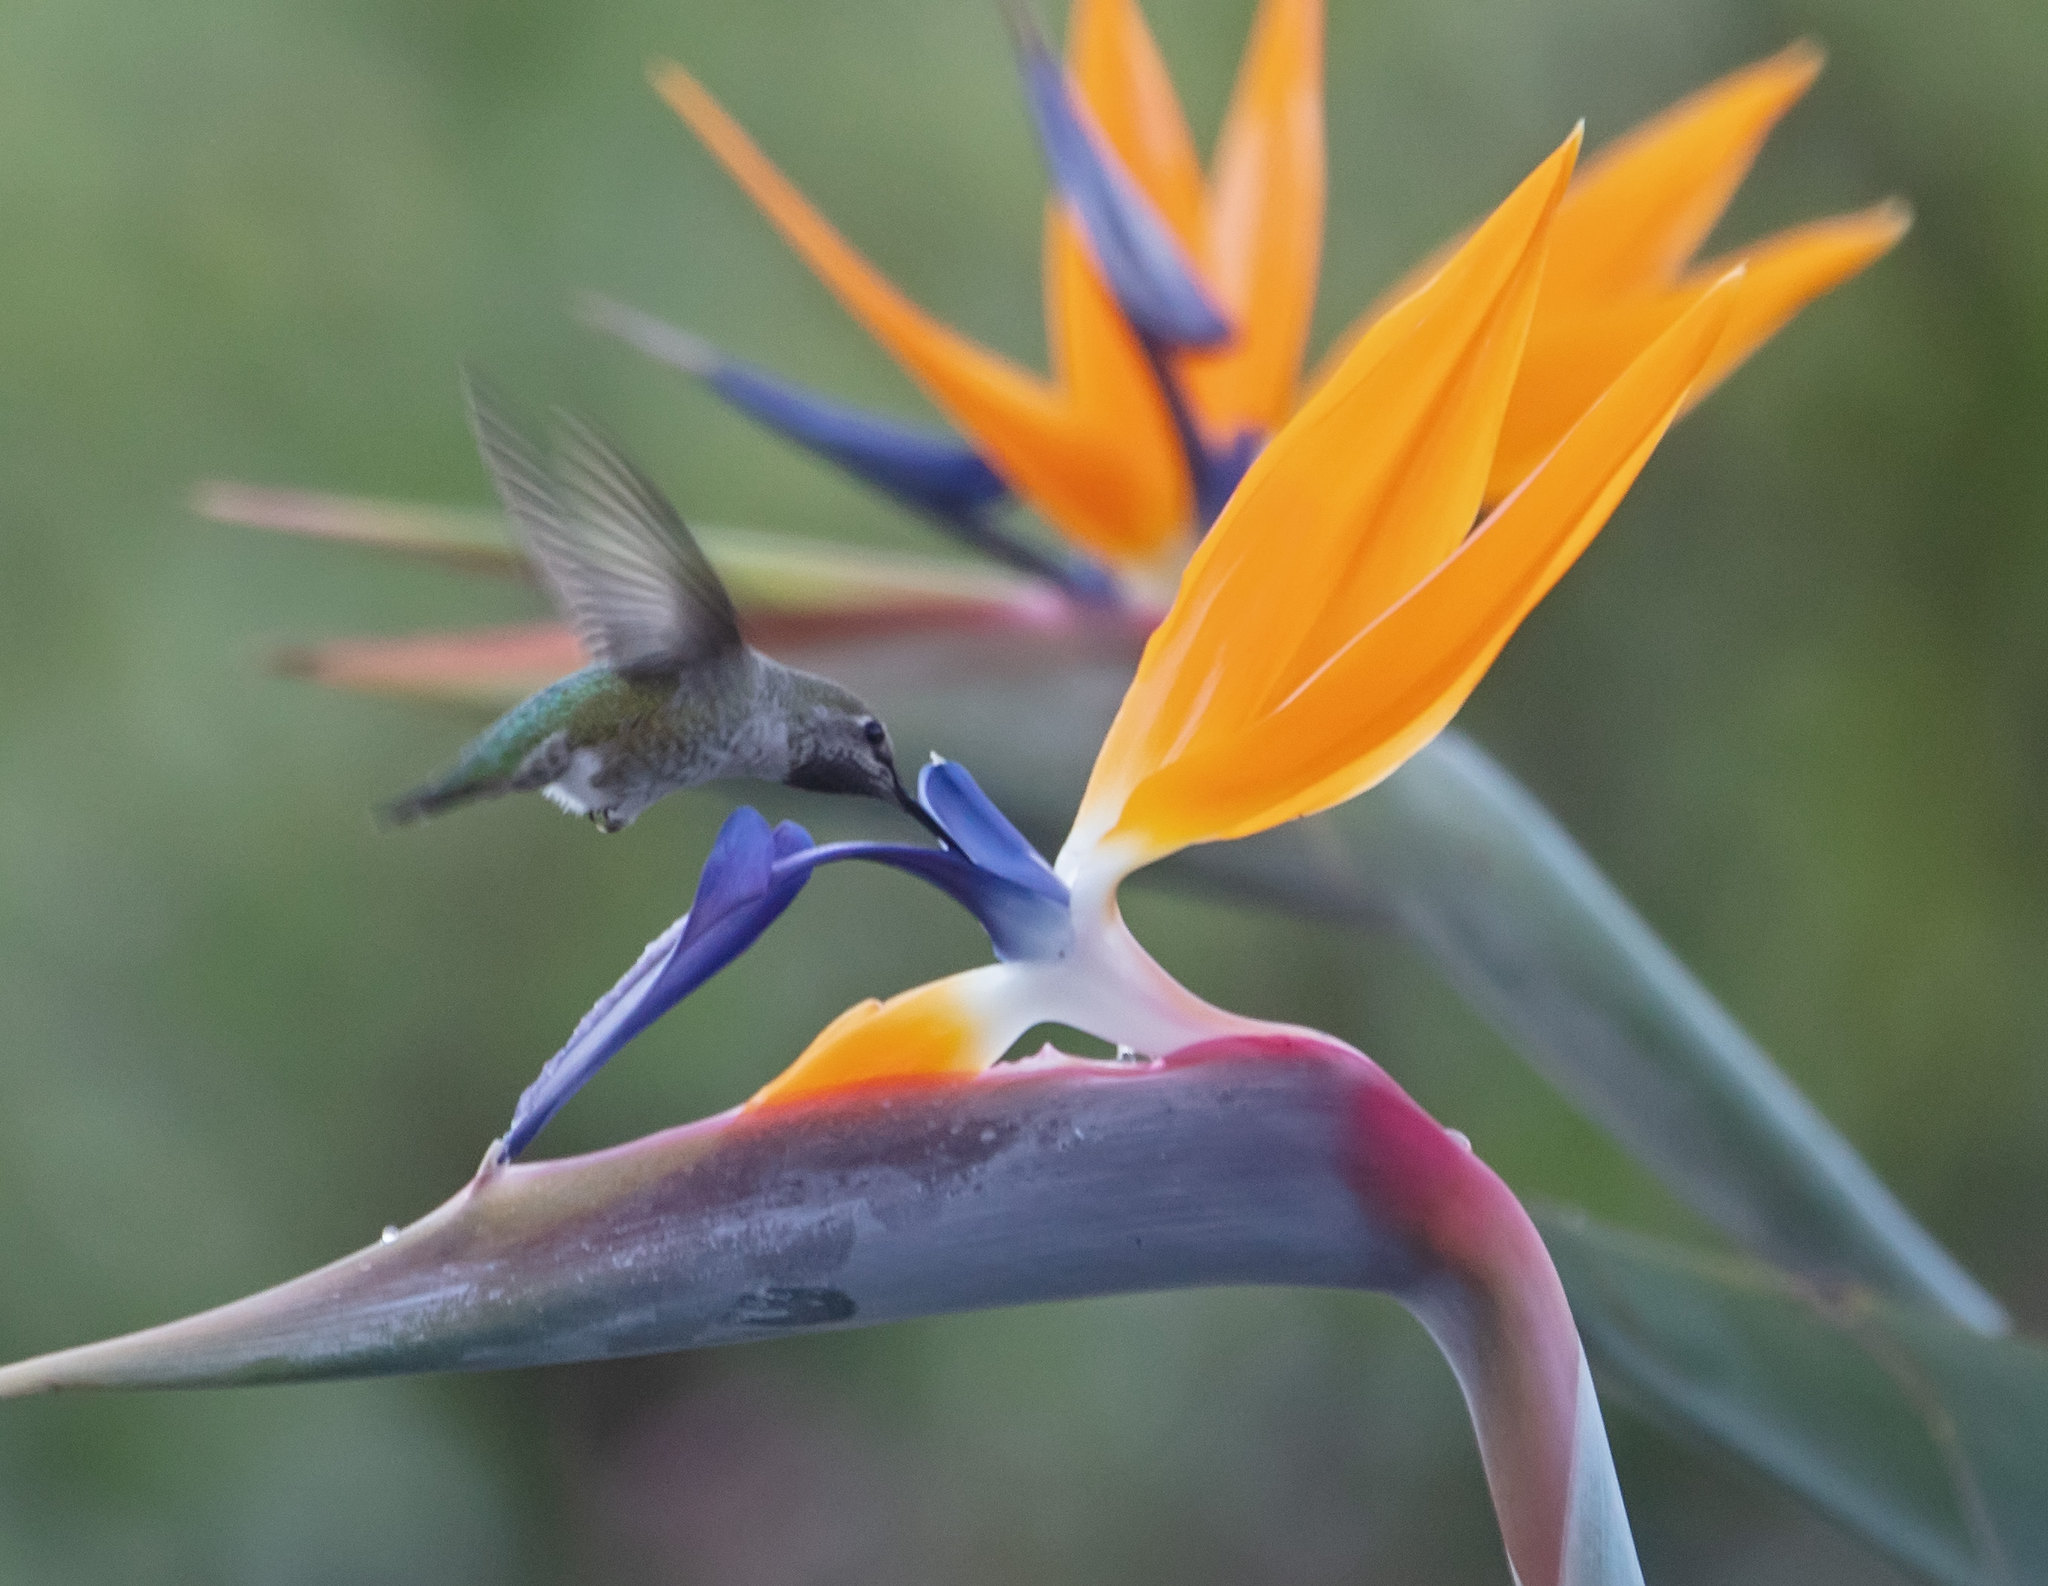 Hummingbird on Bird of Paradise flower